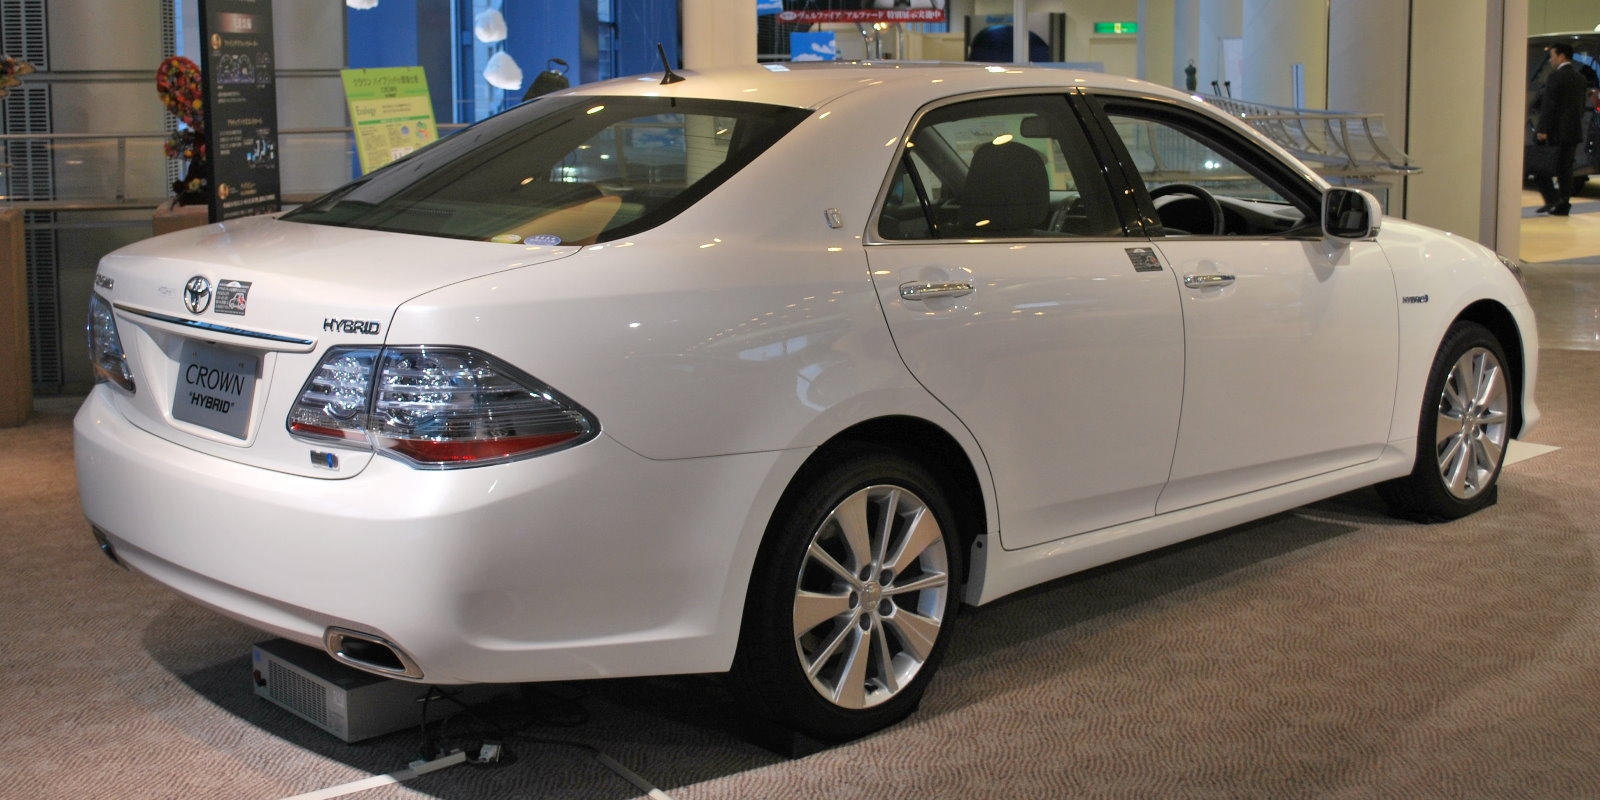 File 2008 Toyota Crown Hybrid 02 Jpg Wikimedia Commons